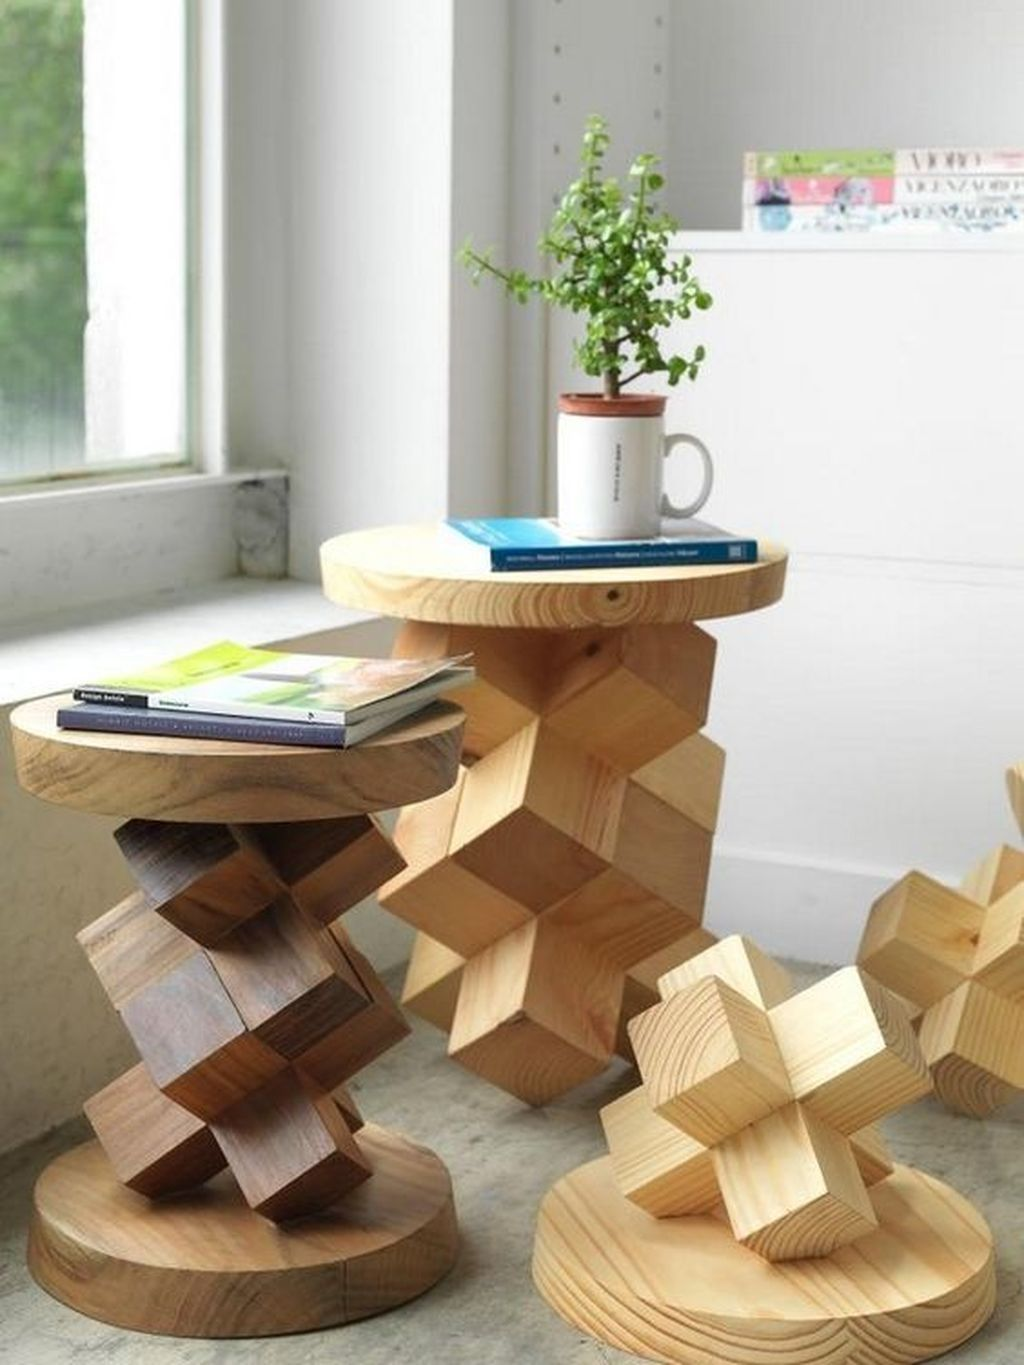 unique and creative wooden furniture ideas for your home decor